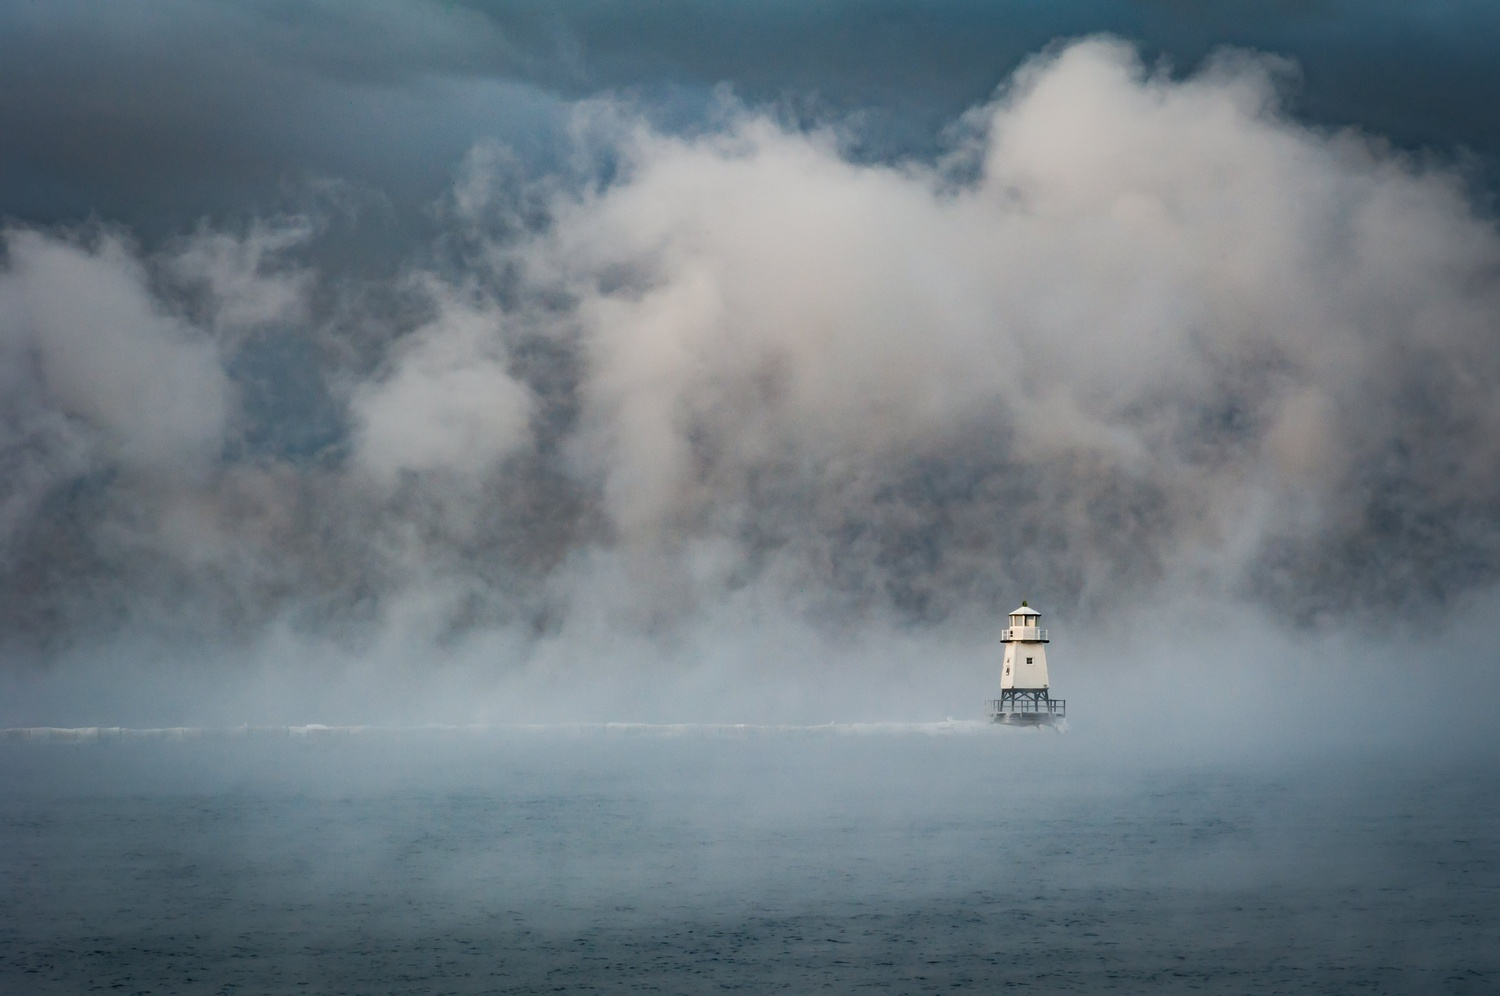 Lighthouse in the mist by Lee Stirling